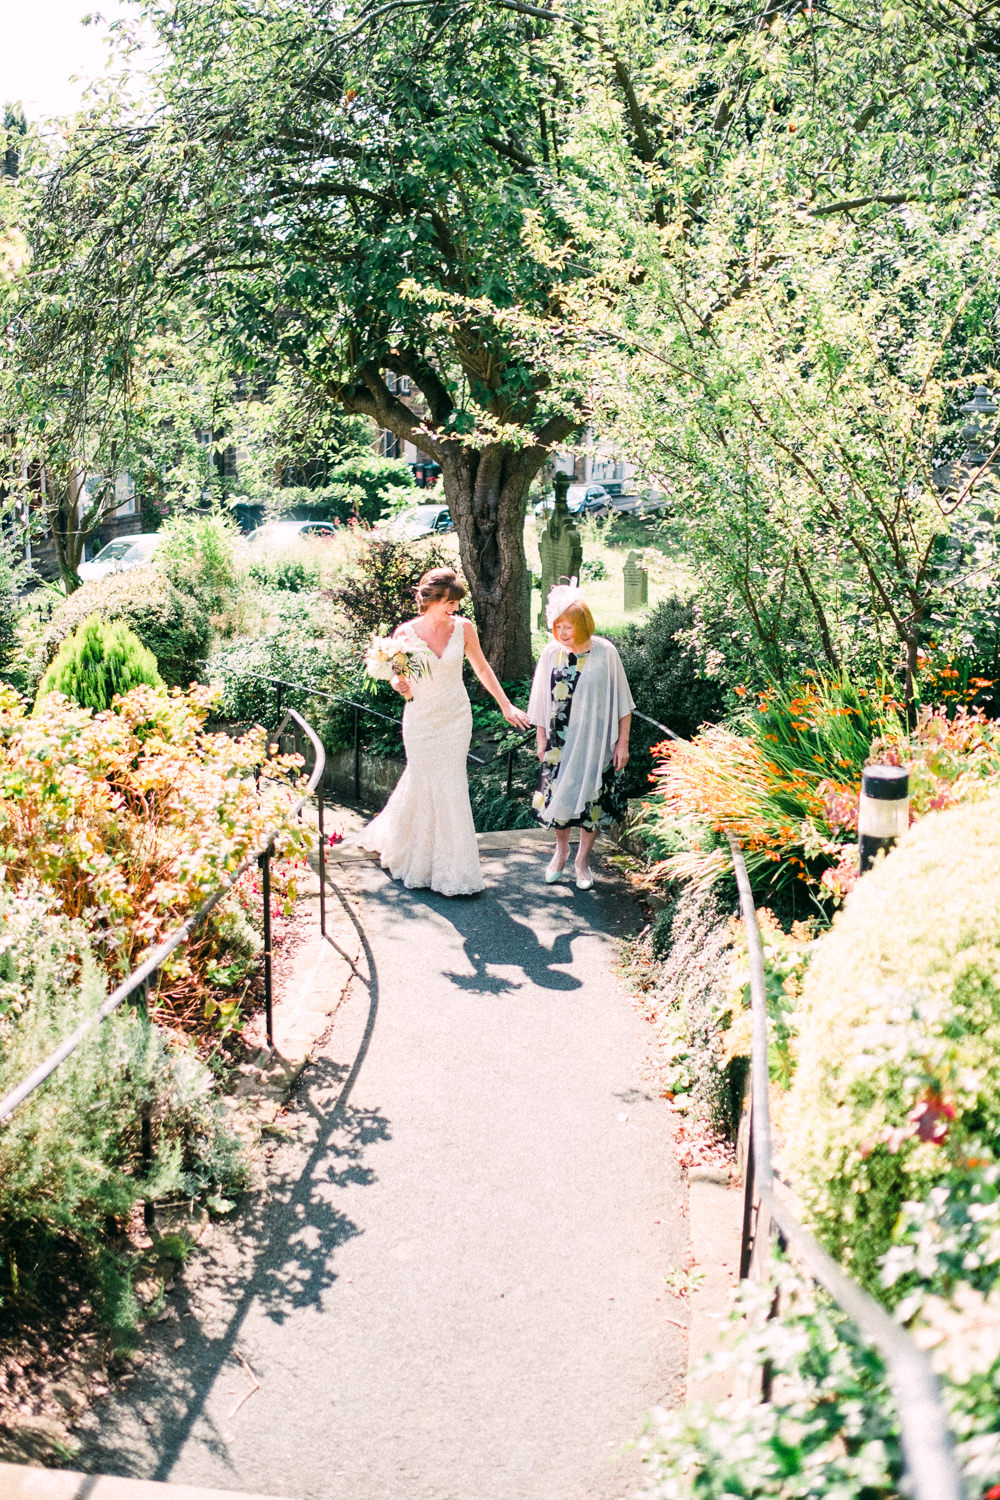 Bride Bridal Low V Neck Back Gown Dress Lace Utopia Broughton Hall Wedding Christopher Thomas Photography